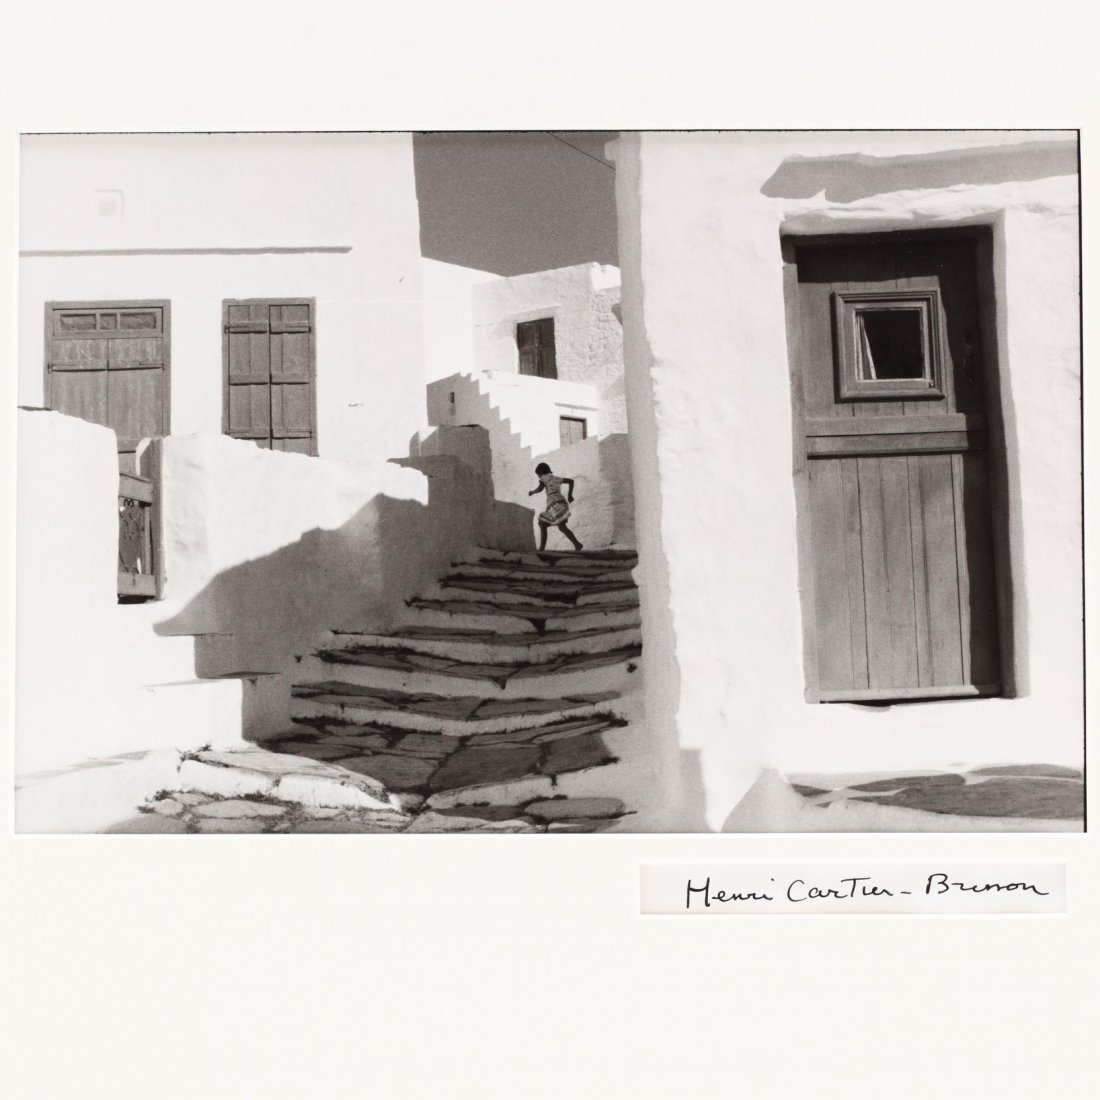 Henri Cartier-Bresson (French, 1908-2004),  Siphnos,